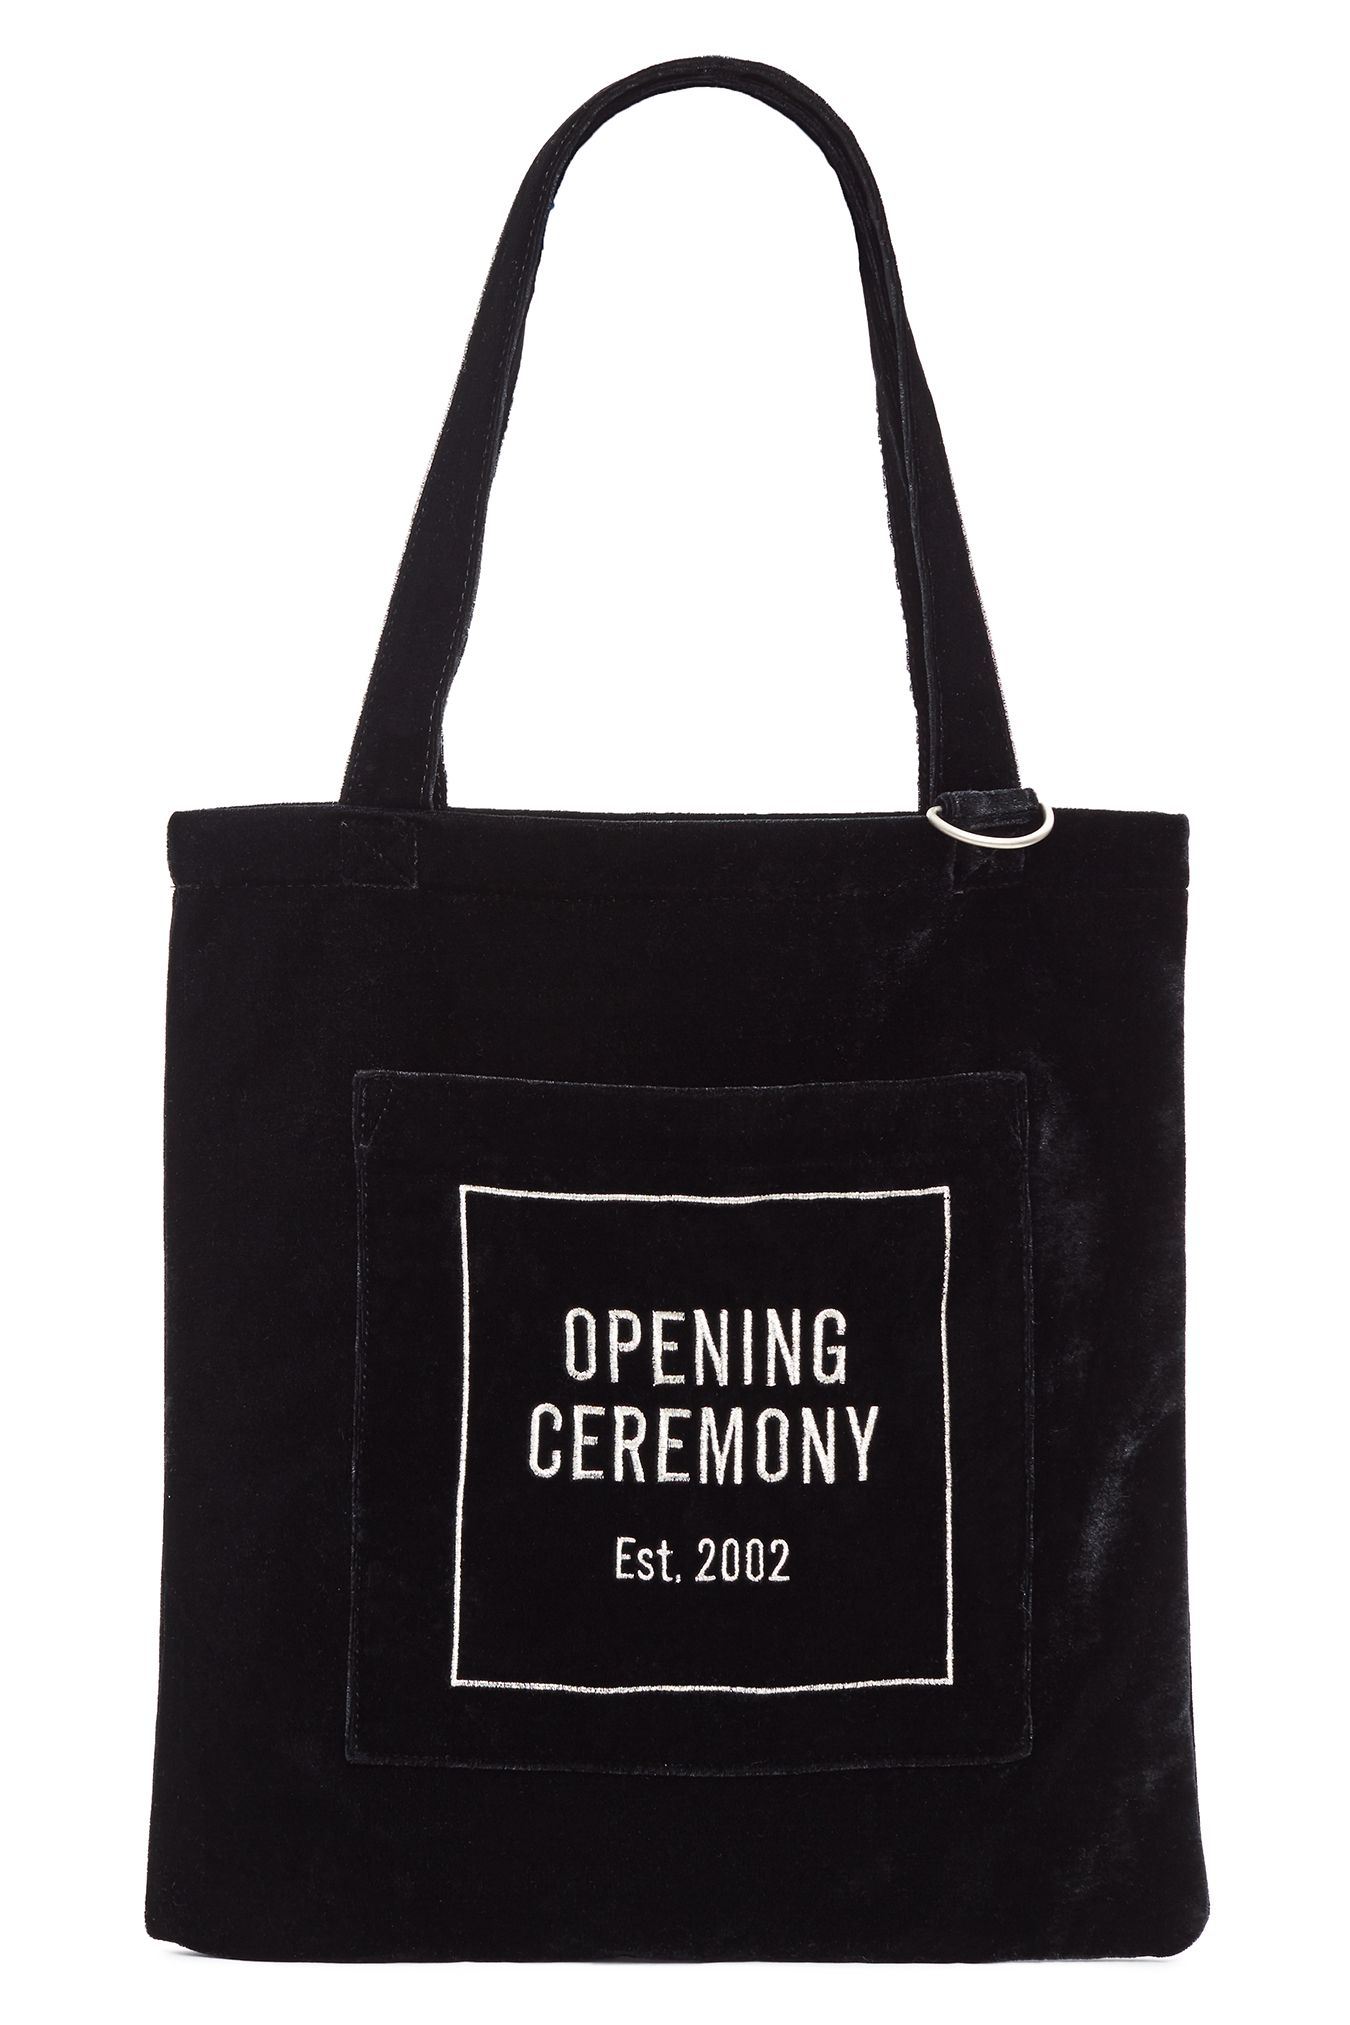 Opening Ceremony OC Velour Eco Bag - WOMEN - Bags   Wallets - Opening  Ceremony - OPENING CEREMONY 907b0b0a4b2cc